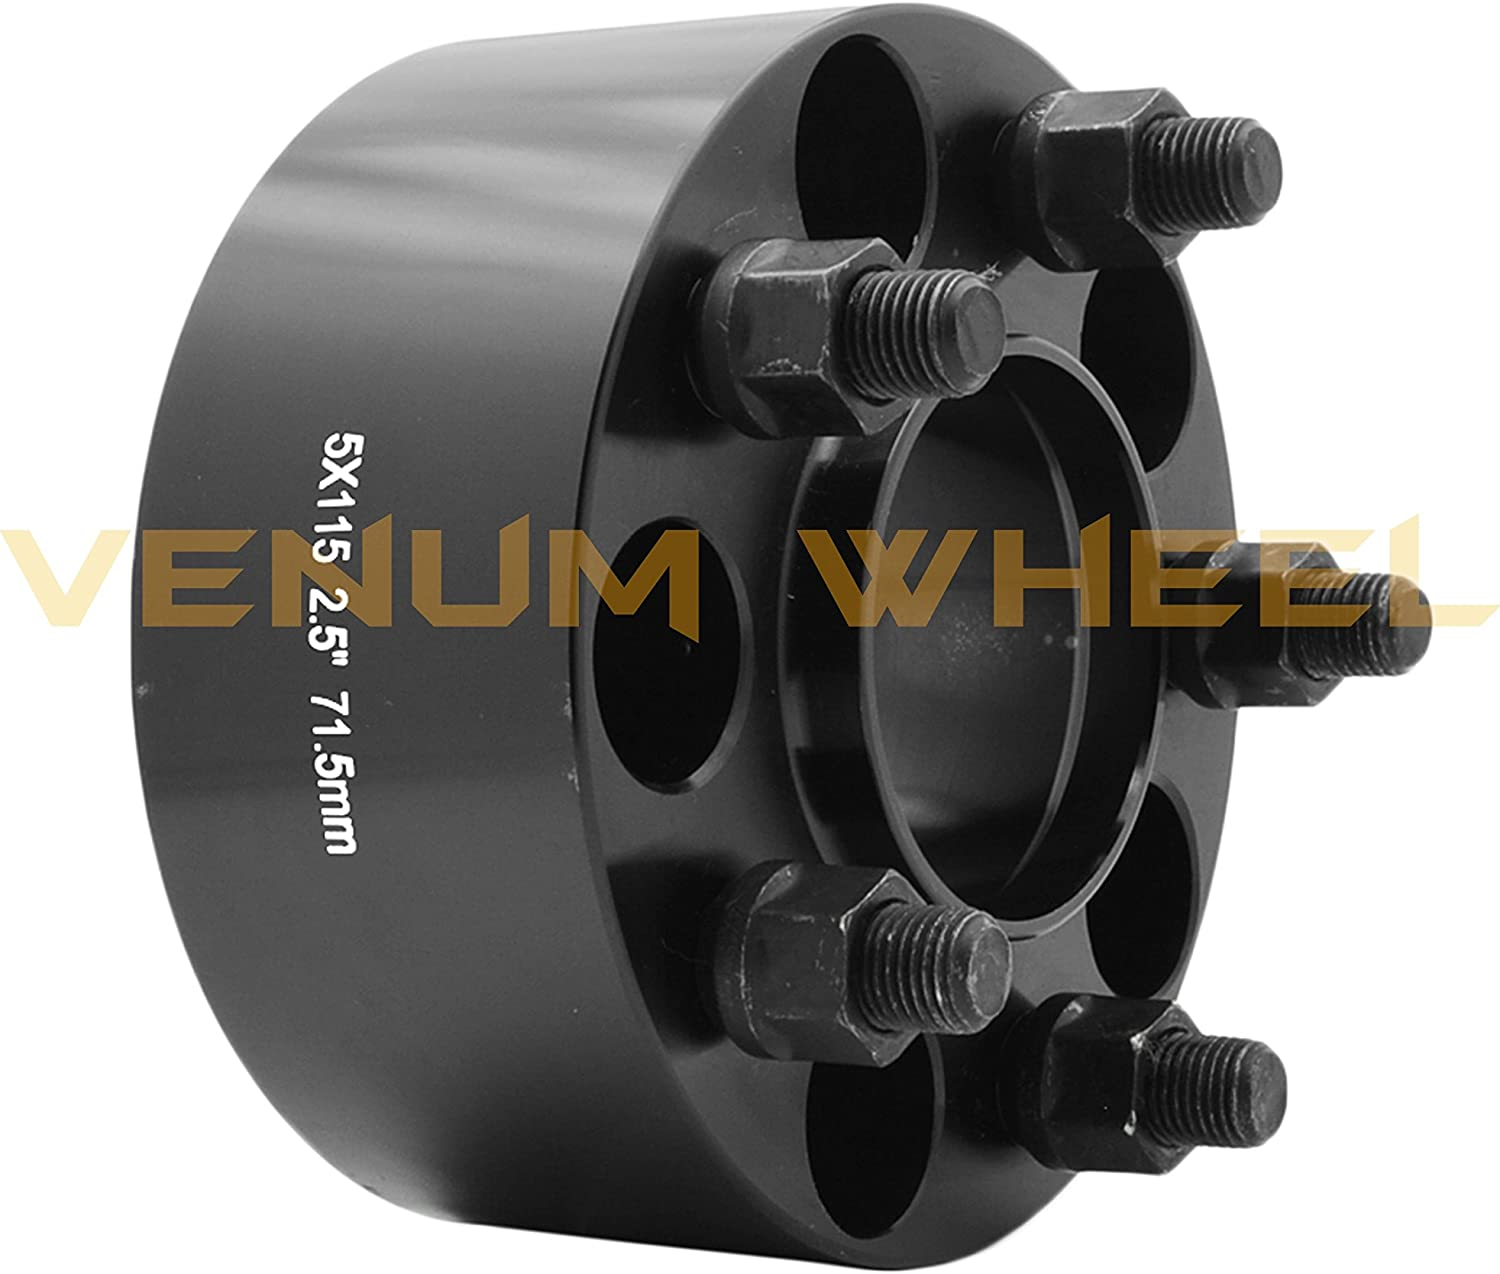 Hub Centric 71.5mm OEM Center Bore Scatpack R//T S//E L//X Models 2 Pc 5x115 Wheel Spacers 2.5 Thick Challenger SRT-8 Charger Magnum 14x1.5 Studs| For Hellcat Demon